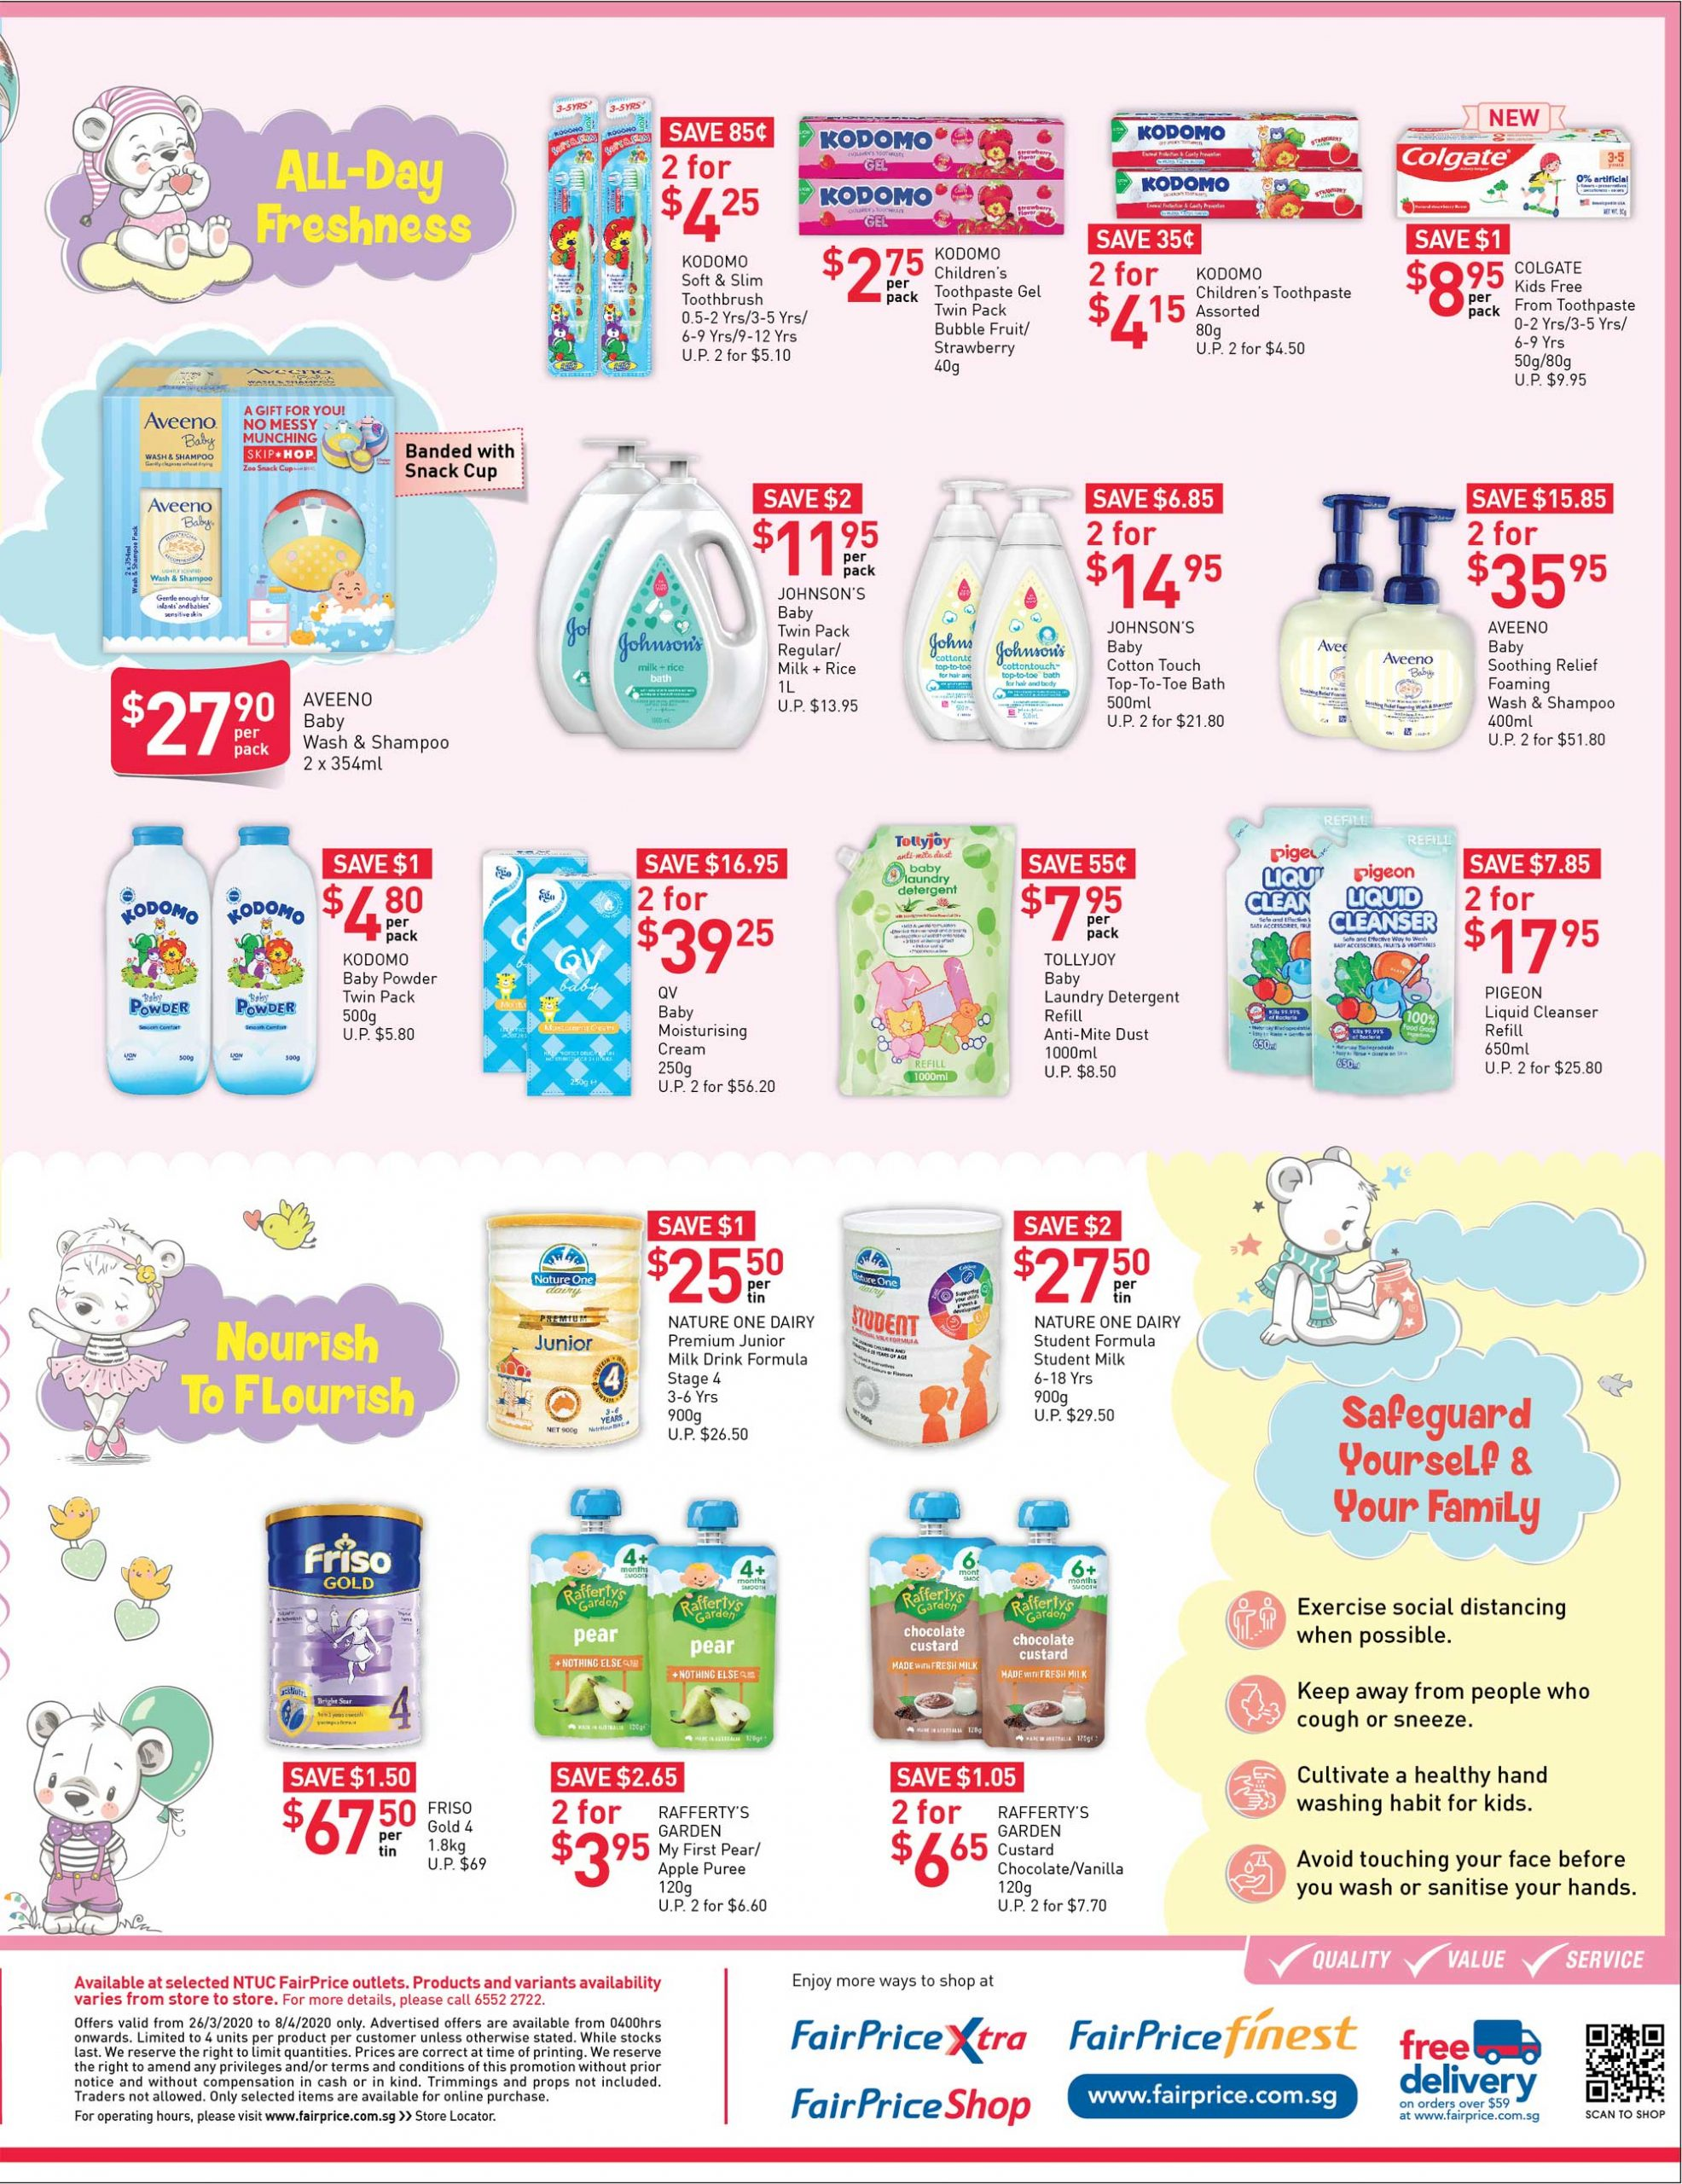 NTUC FairPrice SG Your Weekly Saver Promotion 26 Mar - 1 Apr 2020 | Why Not Deals 6 & Promotions